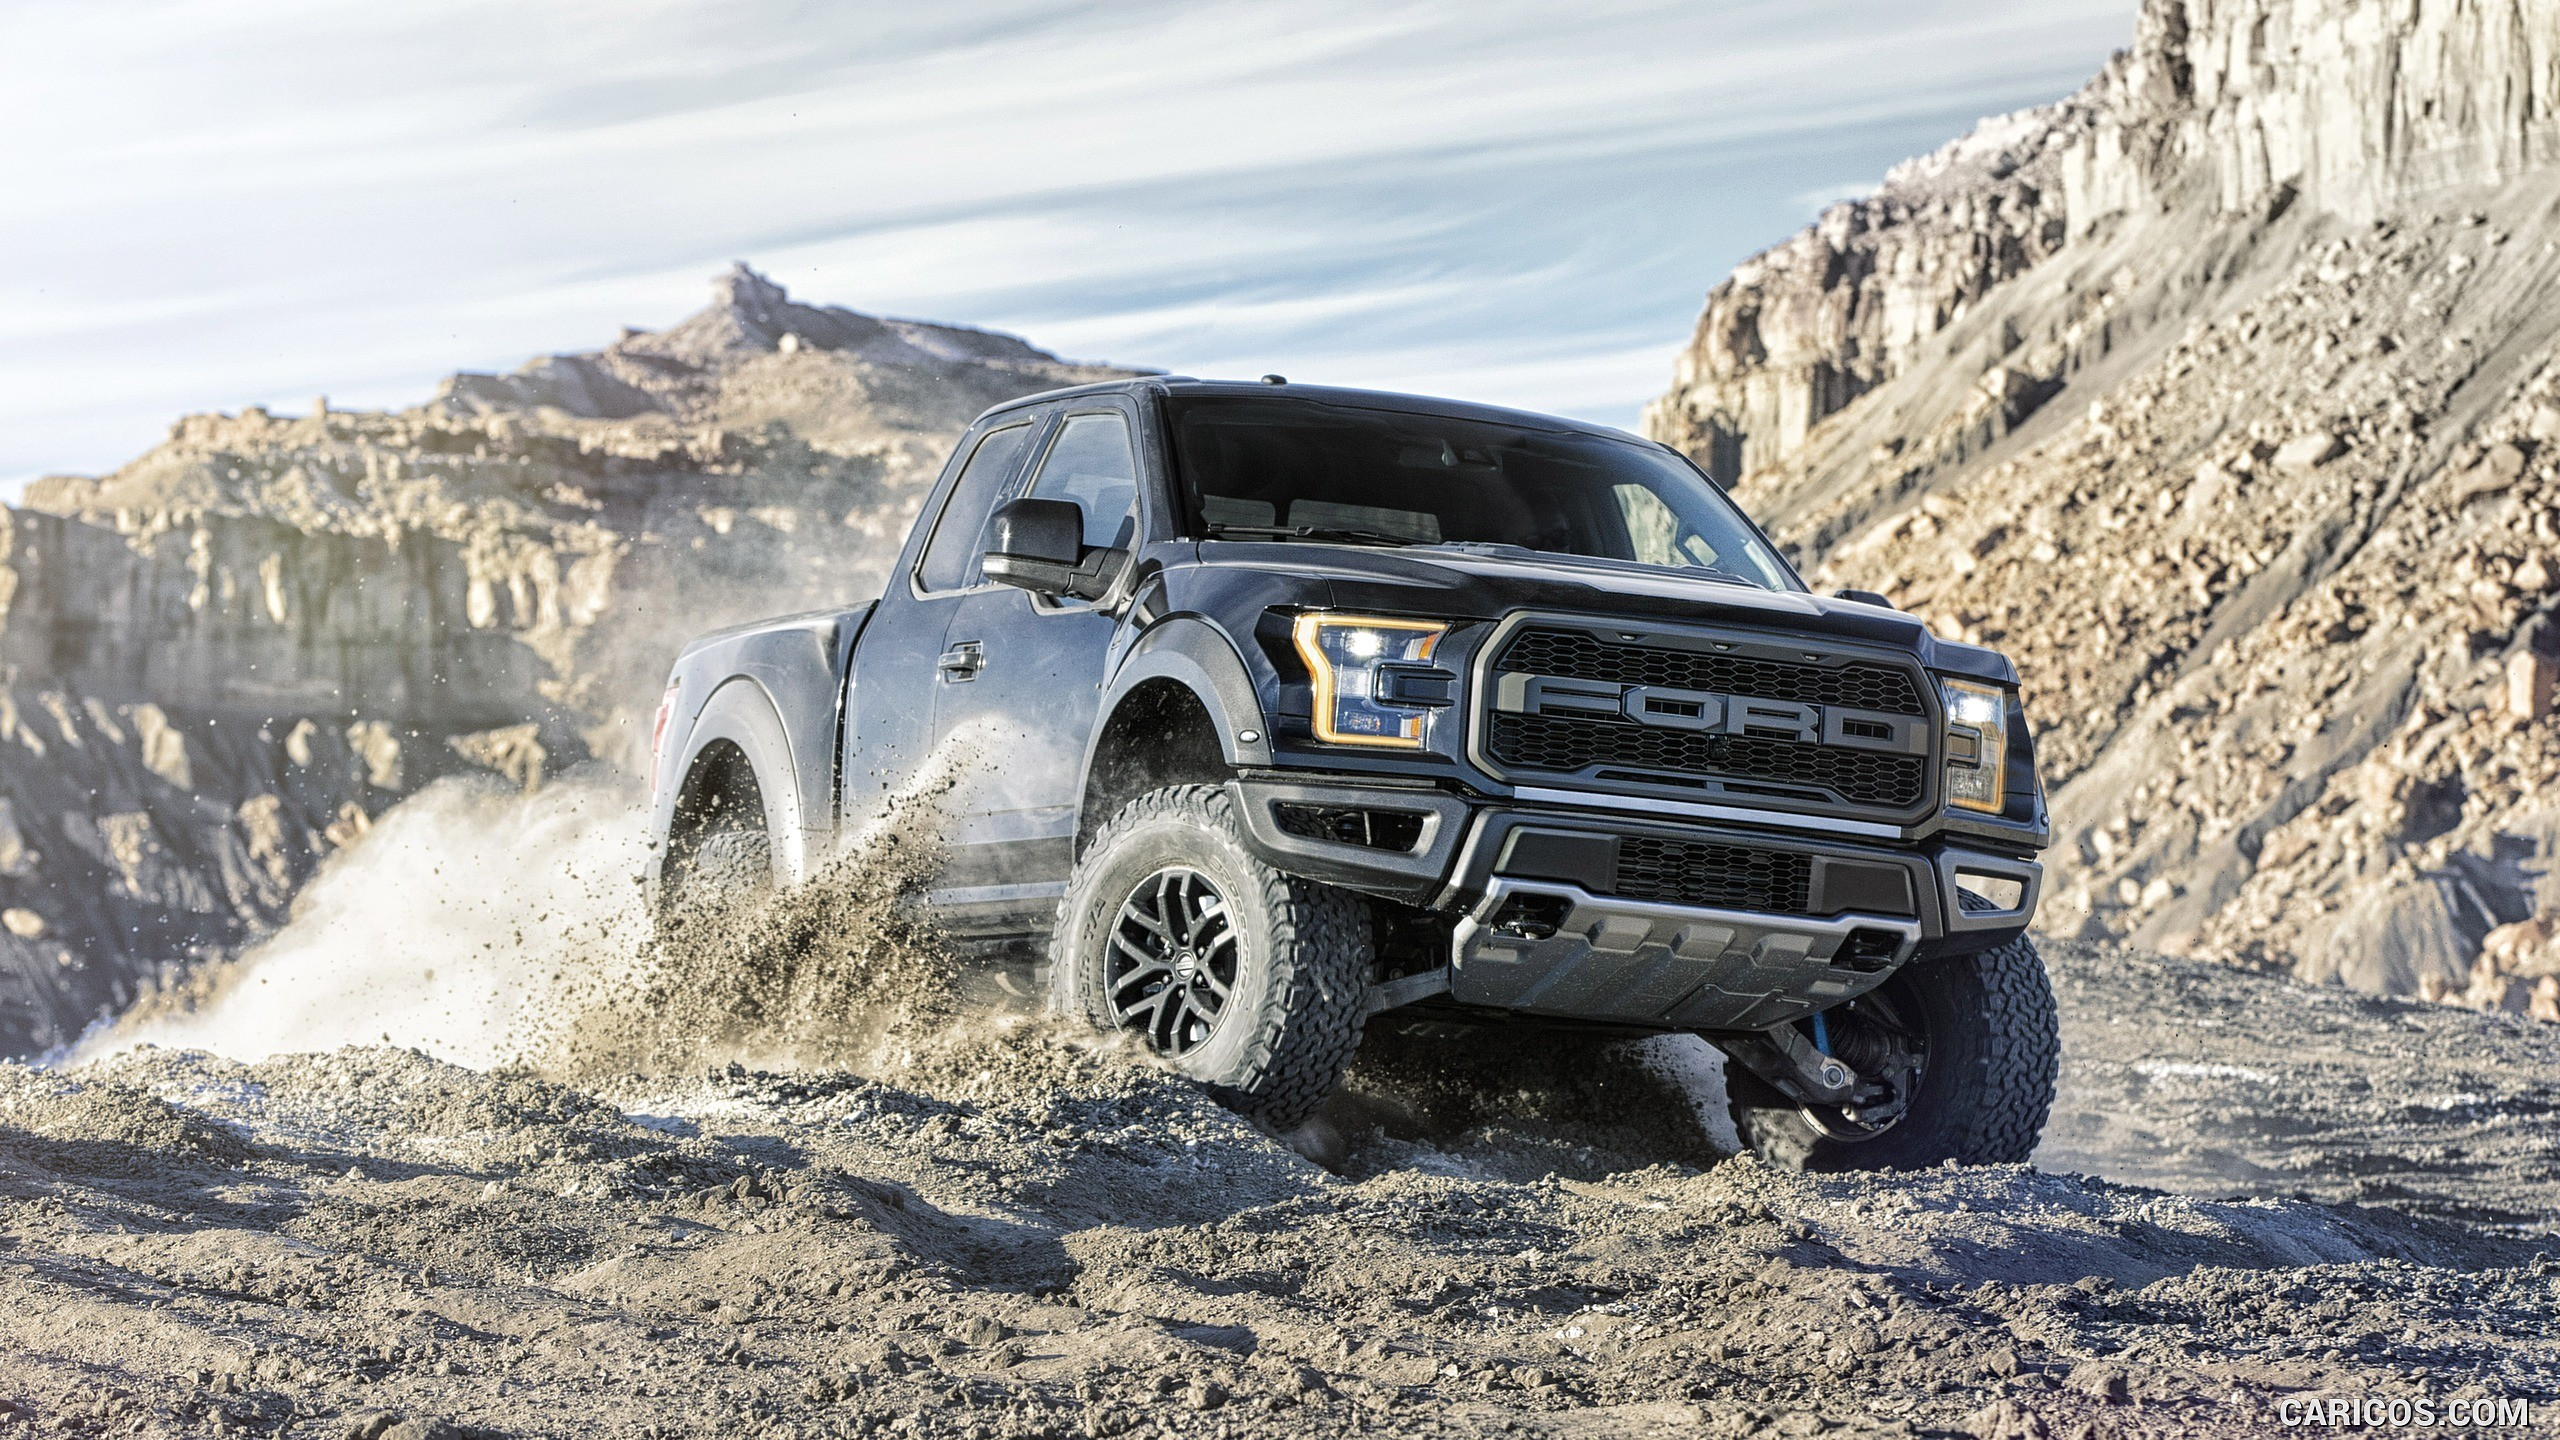 2018 Ford Raptor Wallpaper (70+ images)